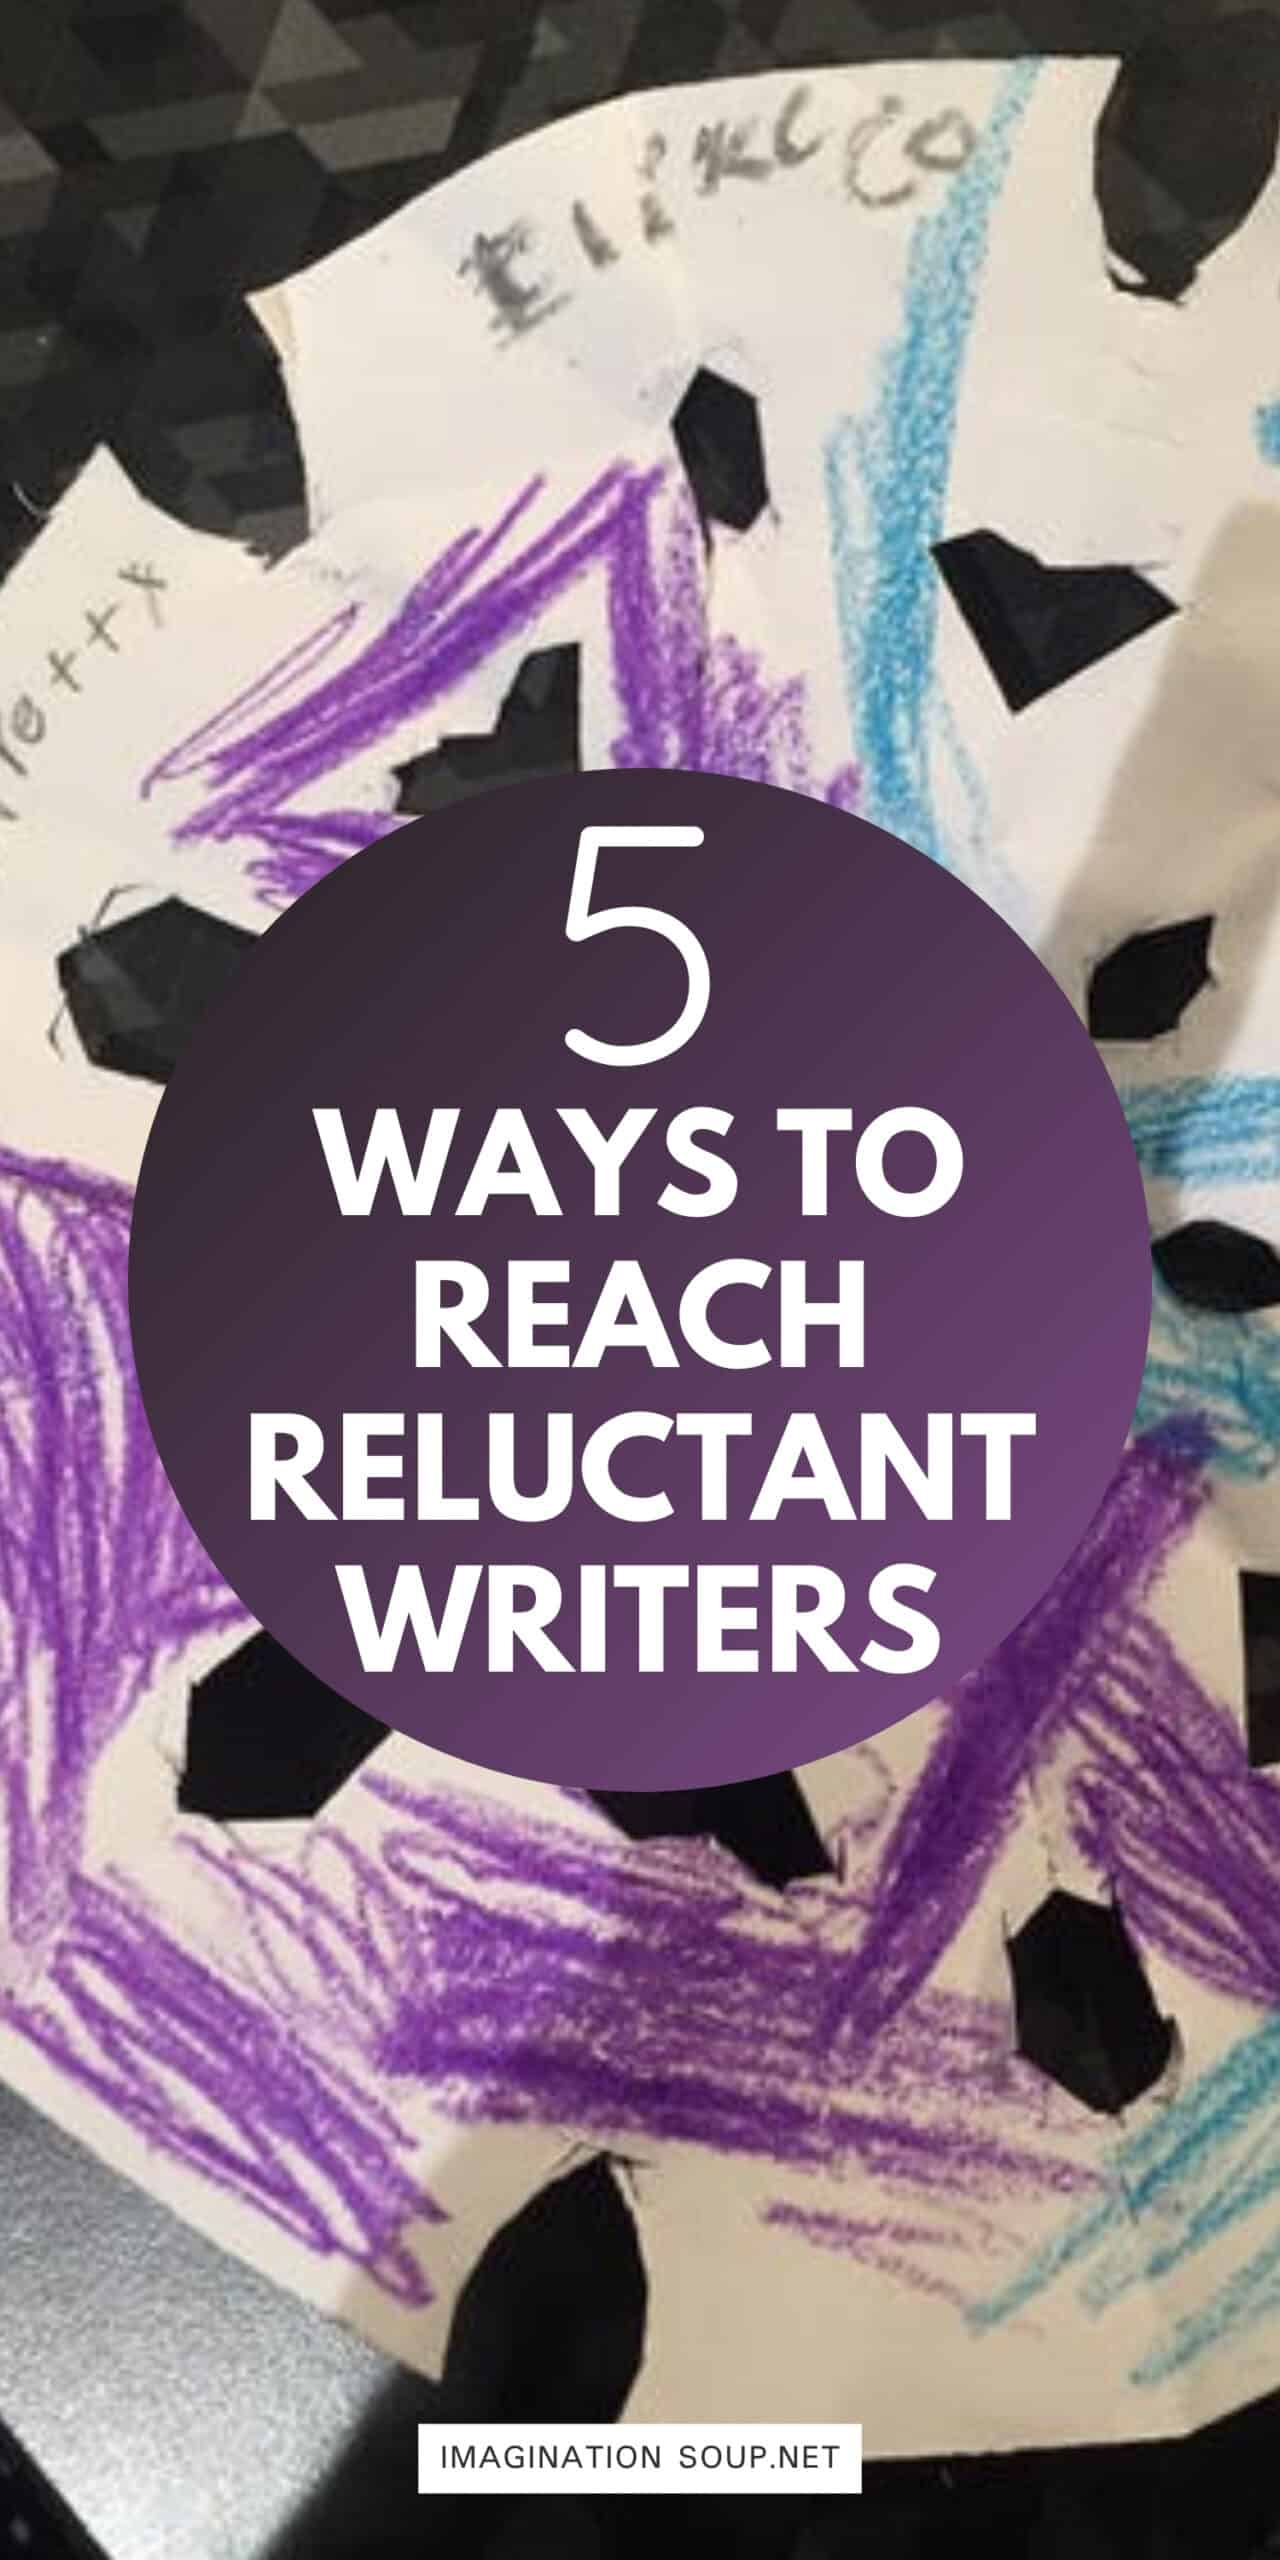 5 Ways to Reach Reluctant Writers